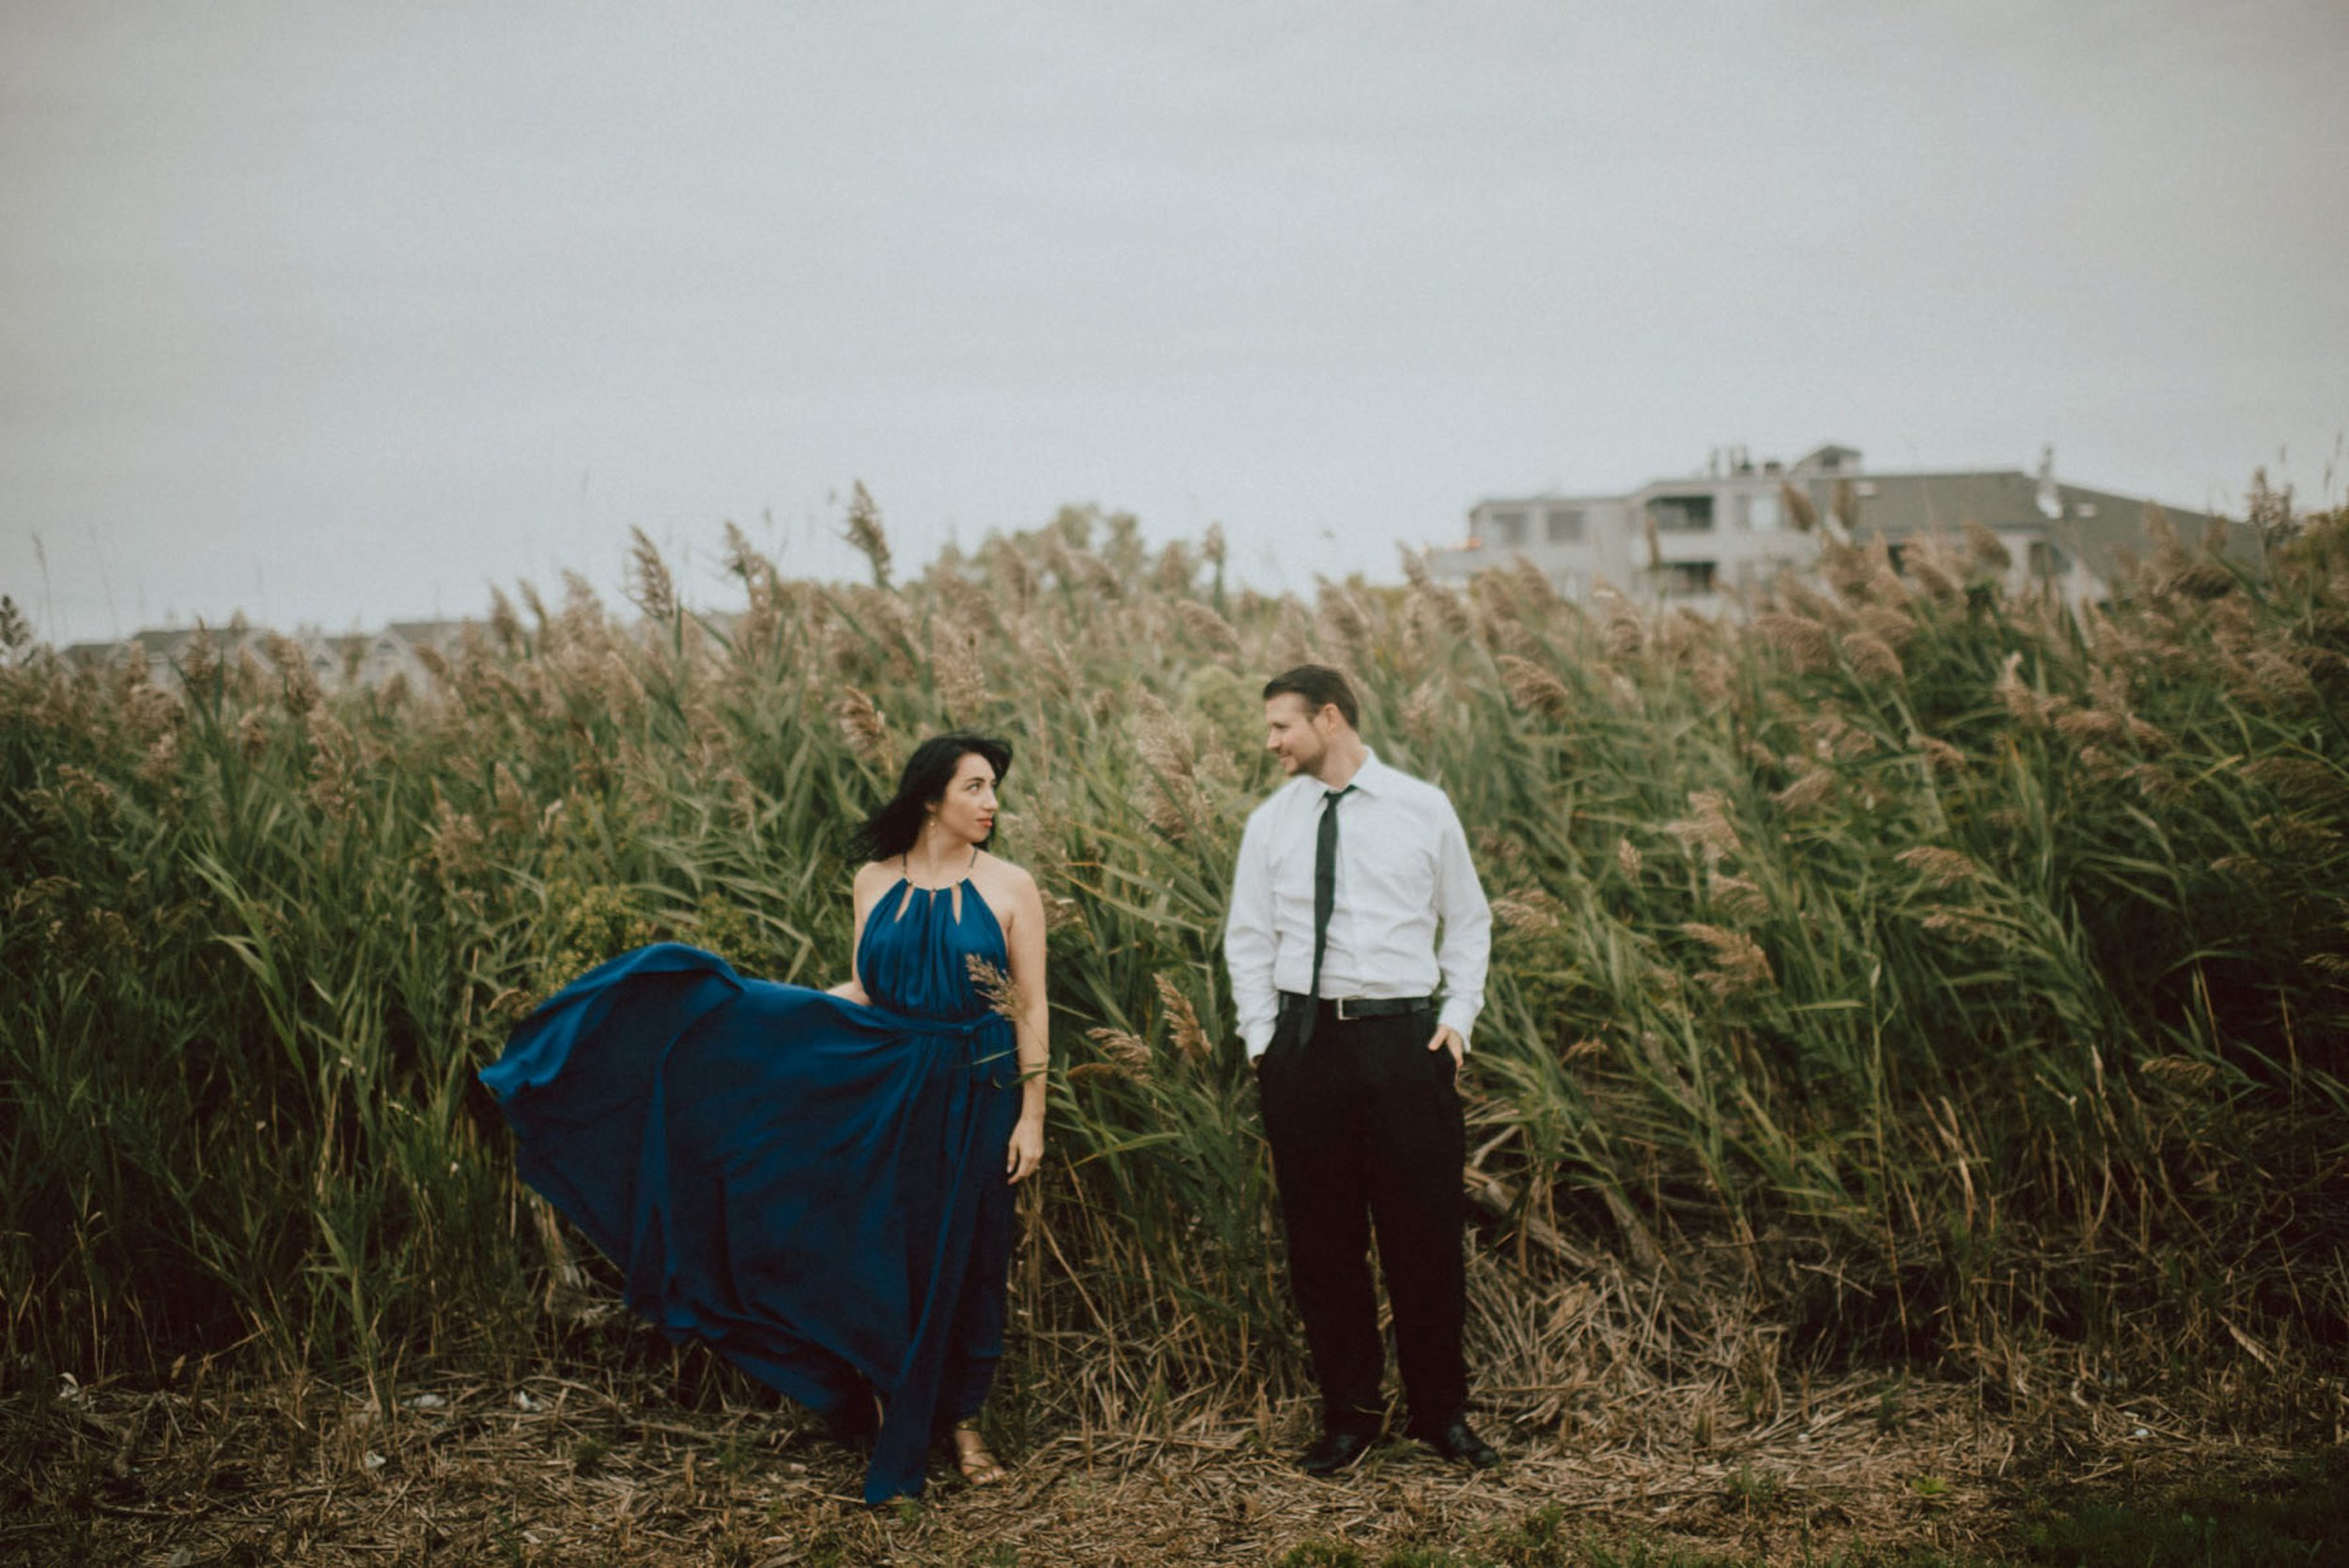 Long-beach-island-engagement-session-44.jpg